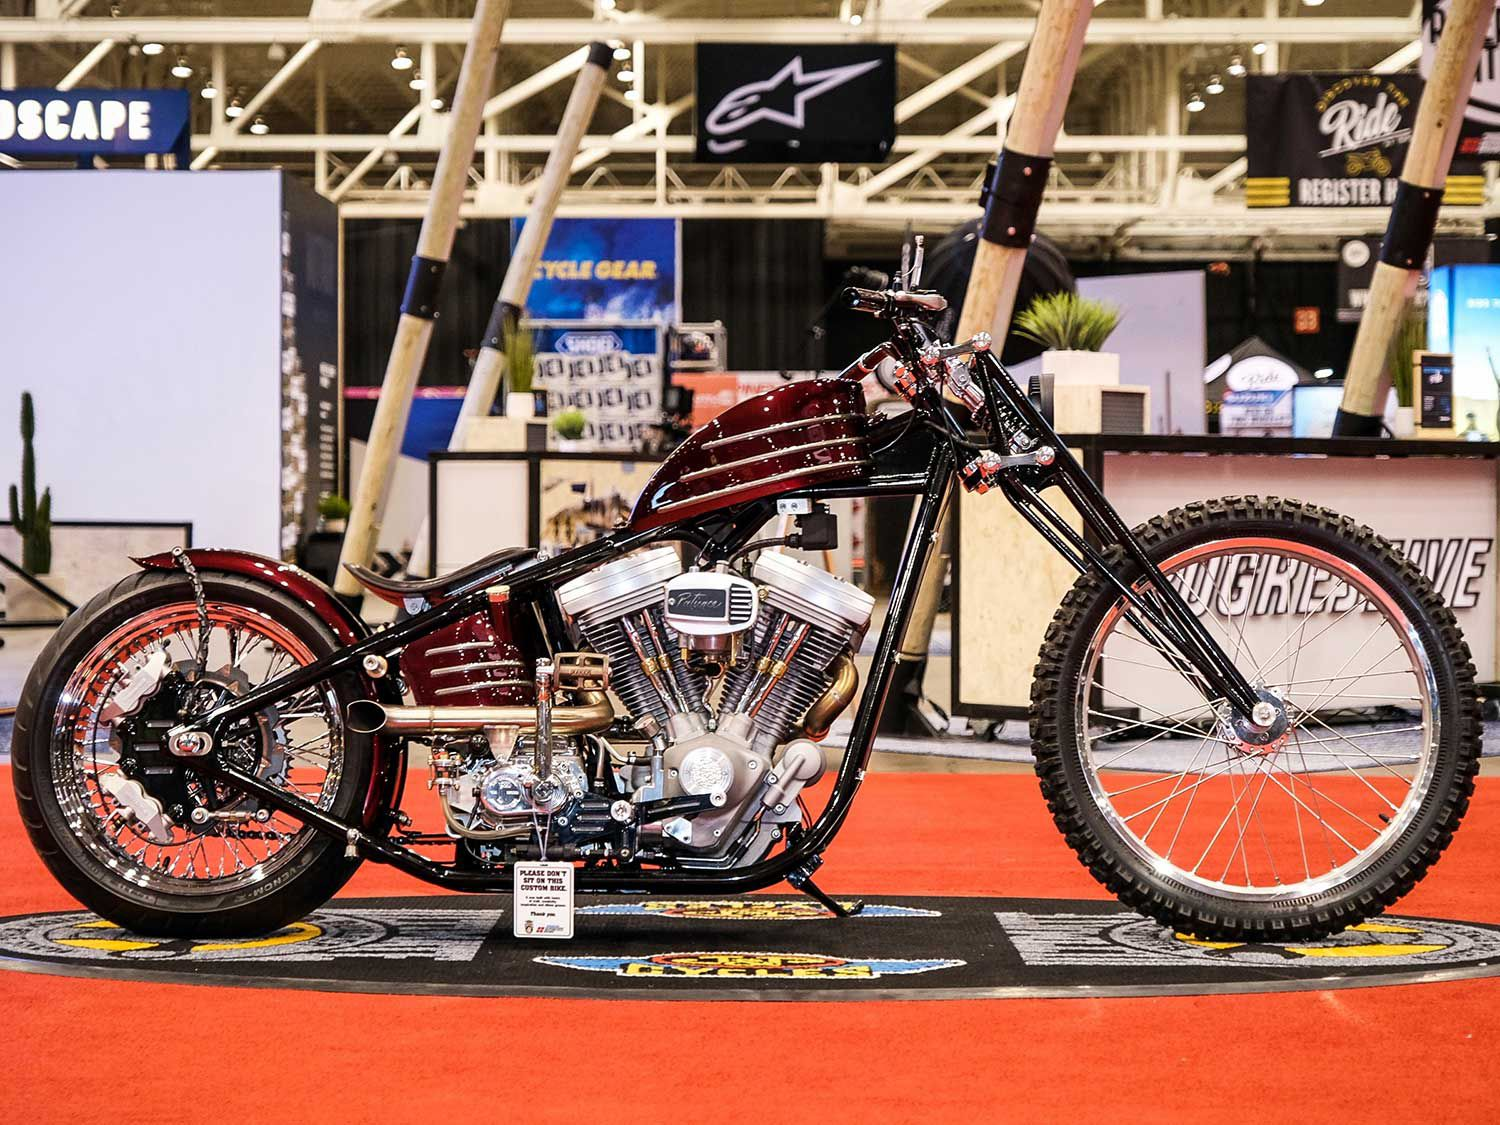 Austin Andrella with Austin Martin Originals grabbed first place in Freestyle with this sweet 2009 stretched Harley-Davidson AMO Rigid, which sports a suicide shift, handmade fuel tank, and paint by Flamethrower Customs and Atomic Bob.